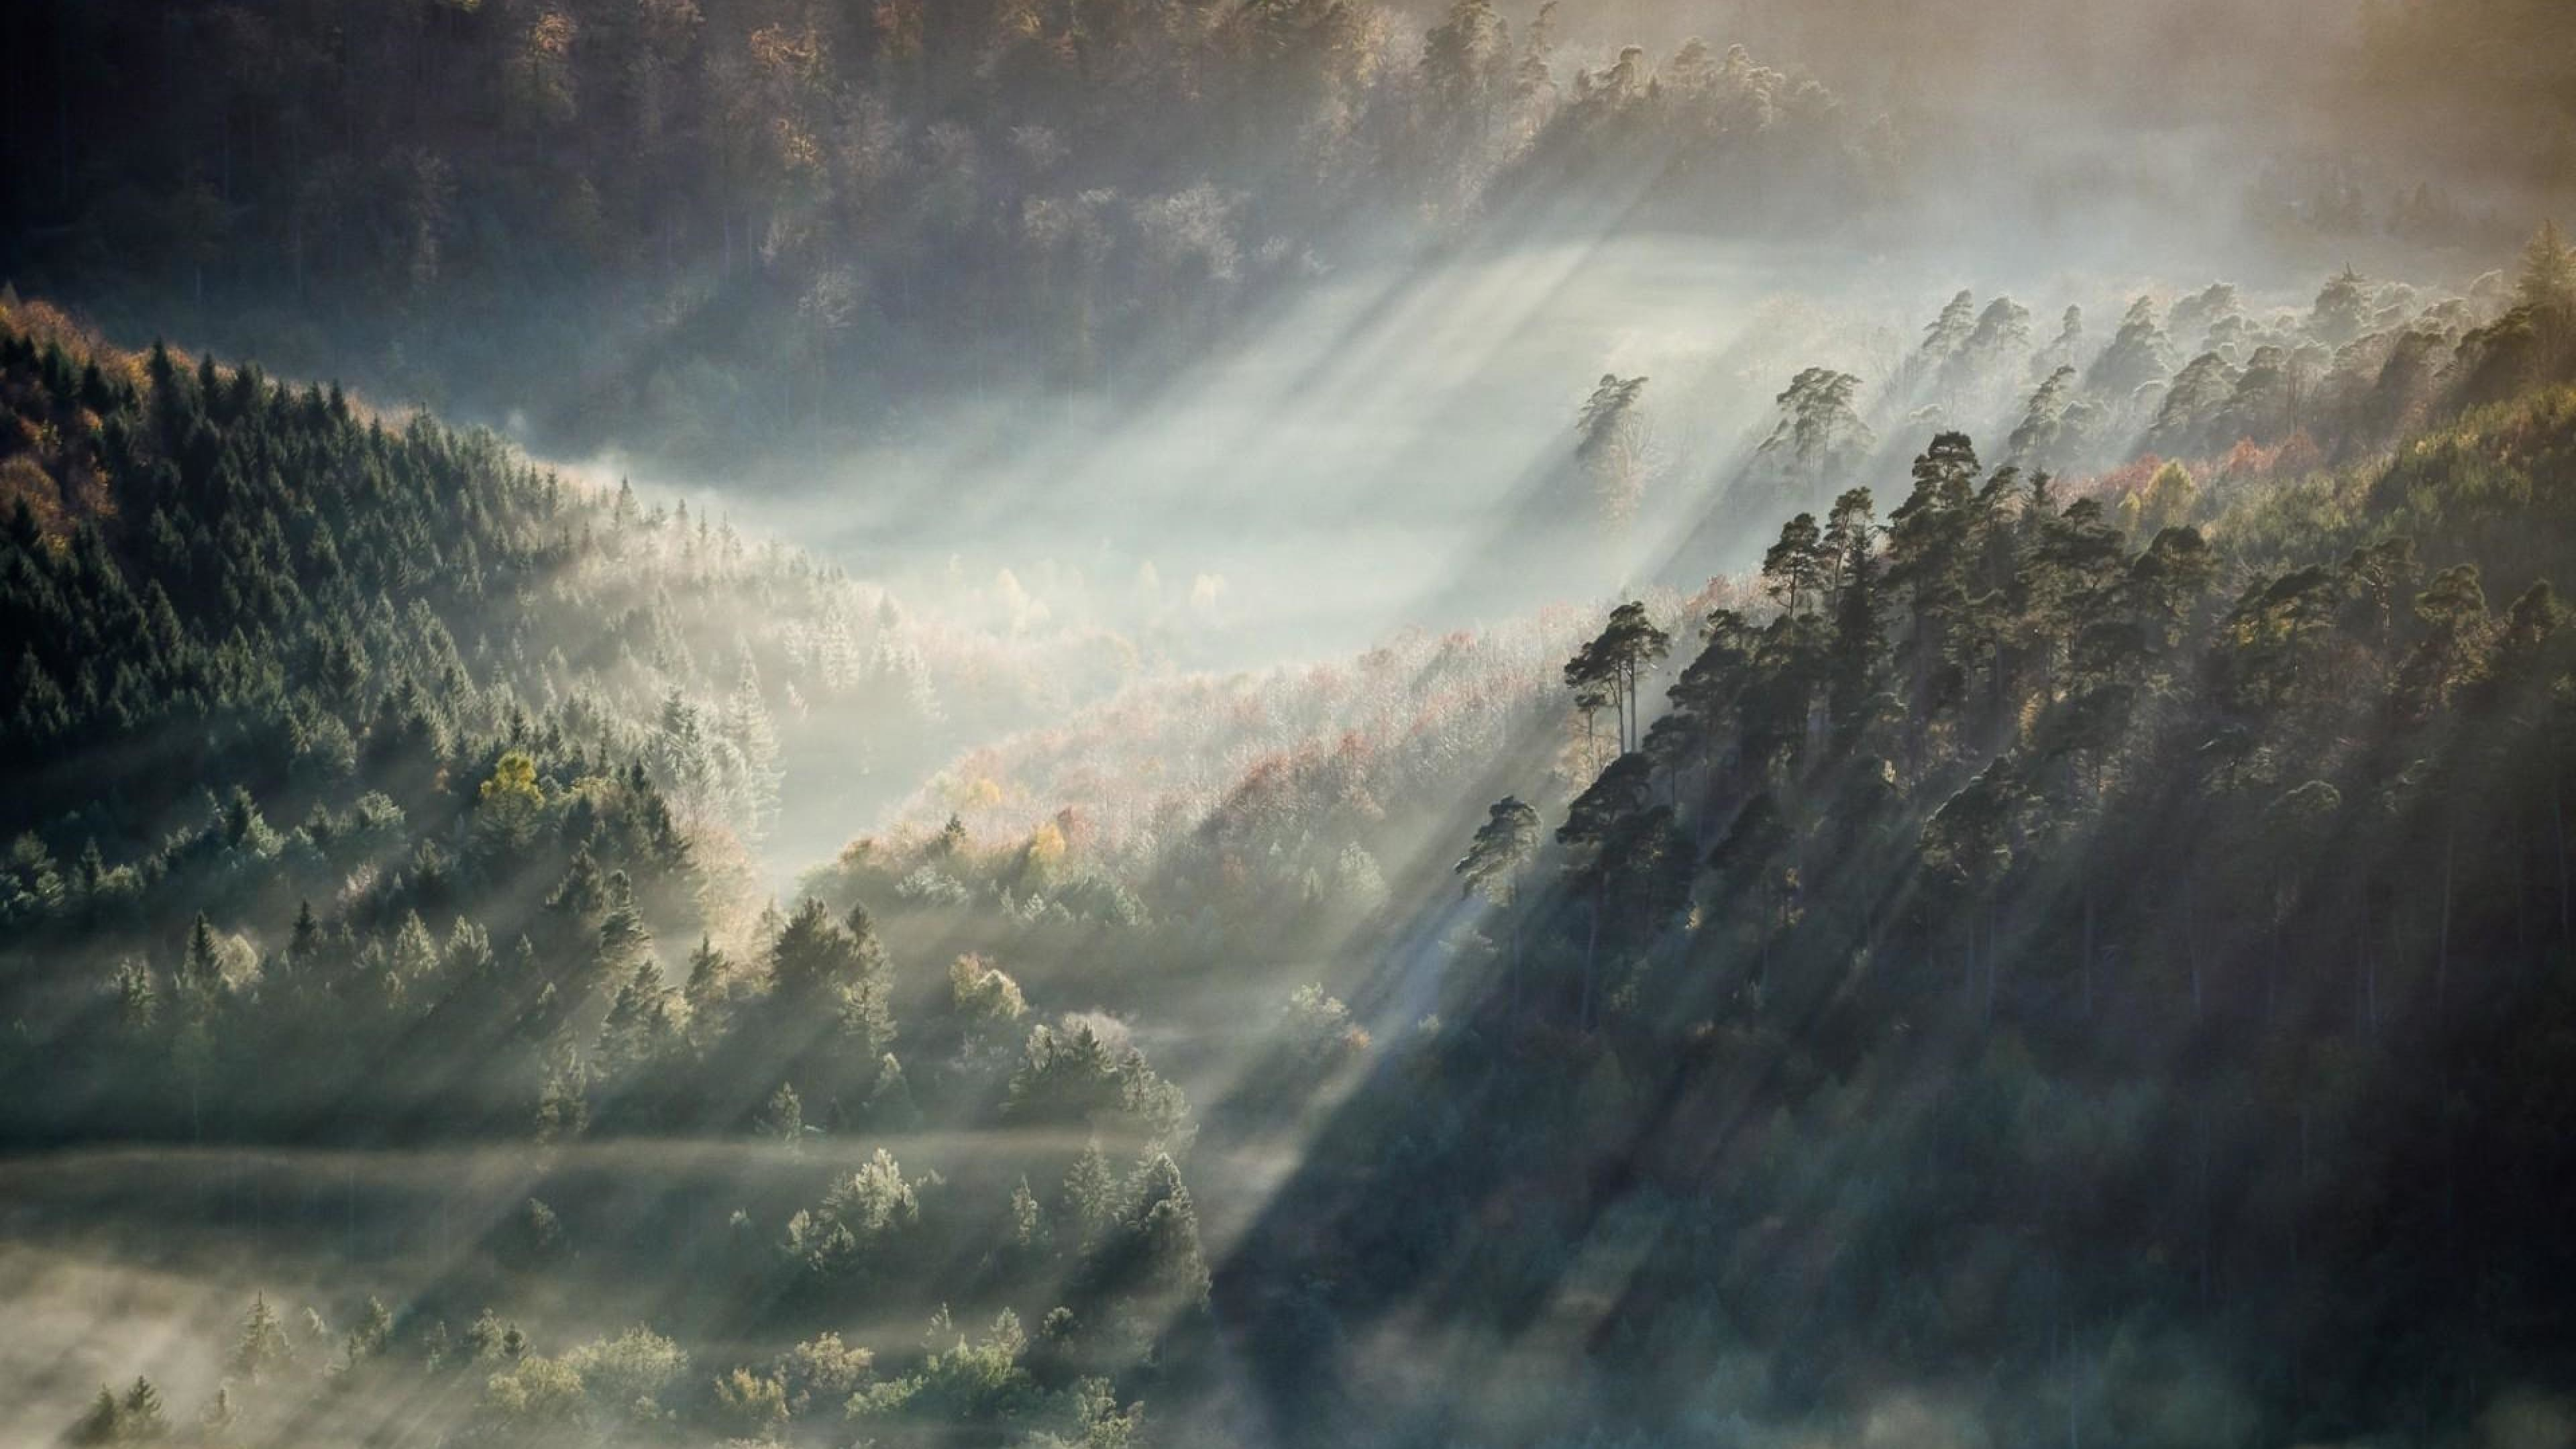 Res: 3840x2160, Foggy Forest Wallpaper Photo